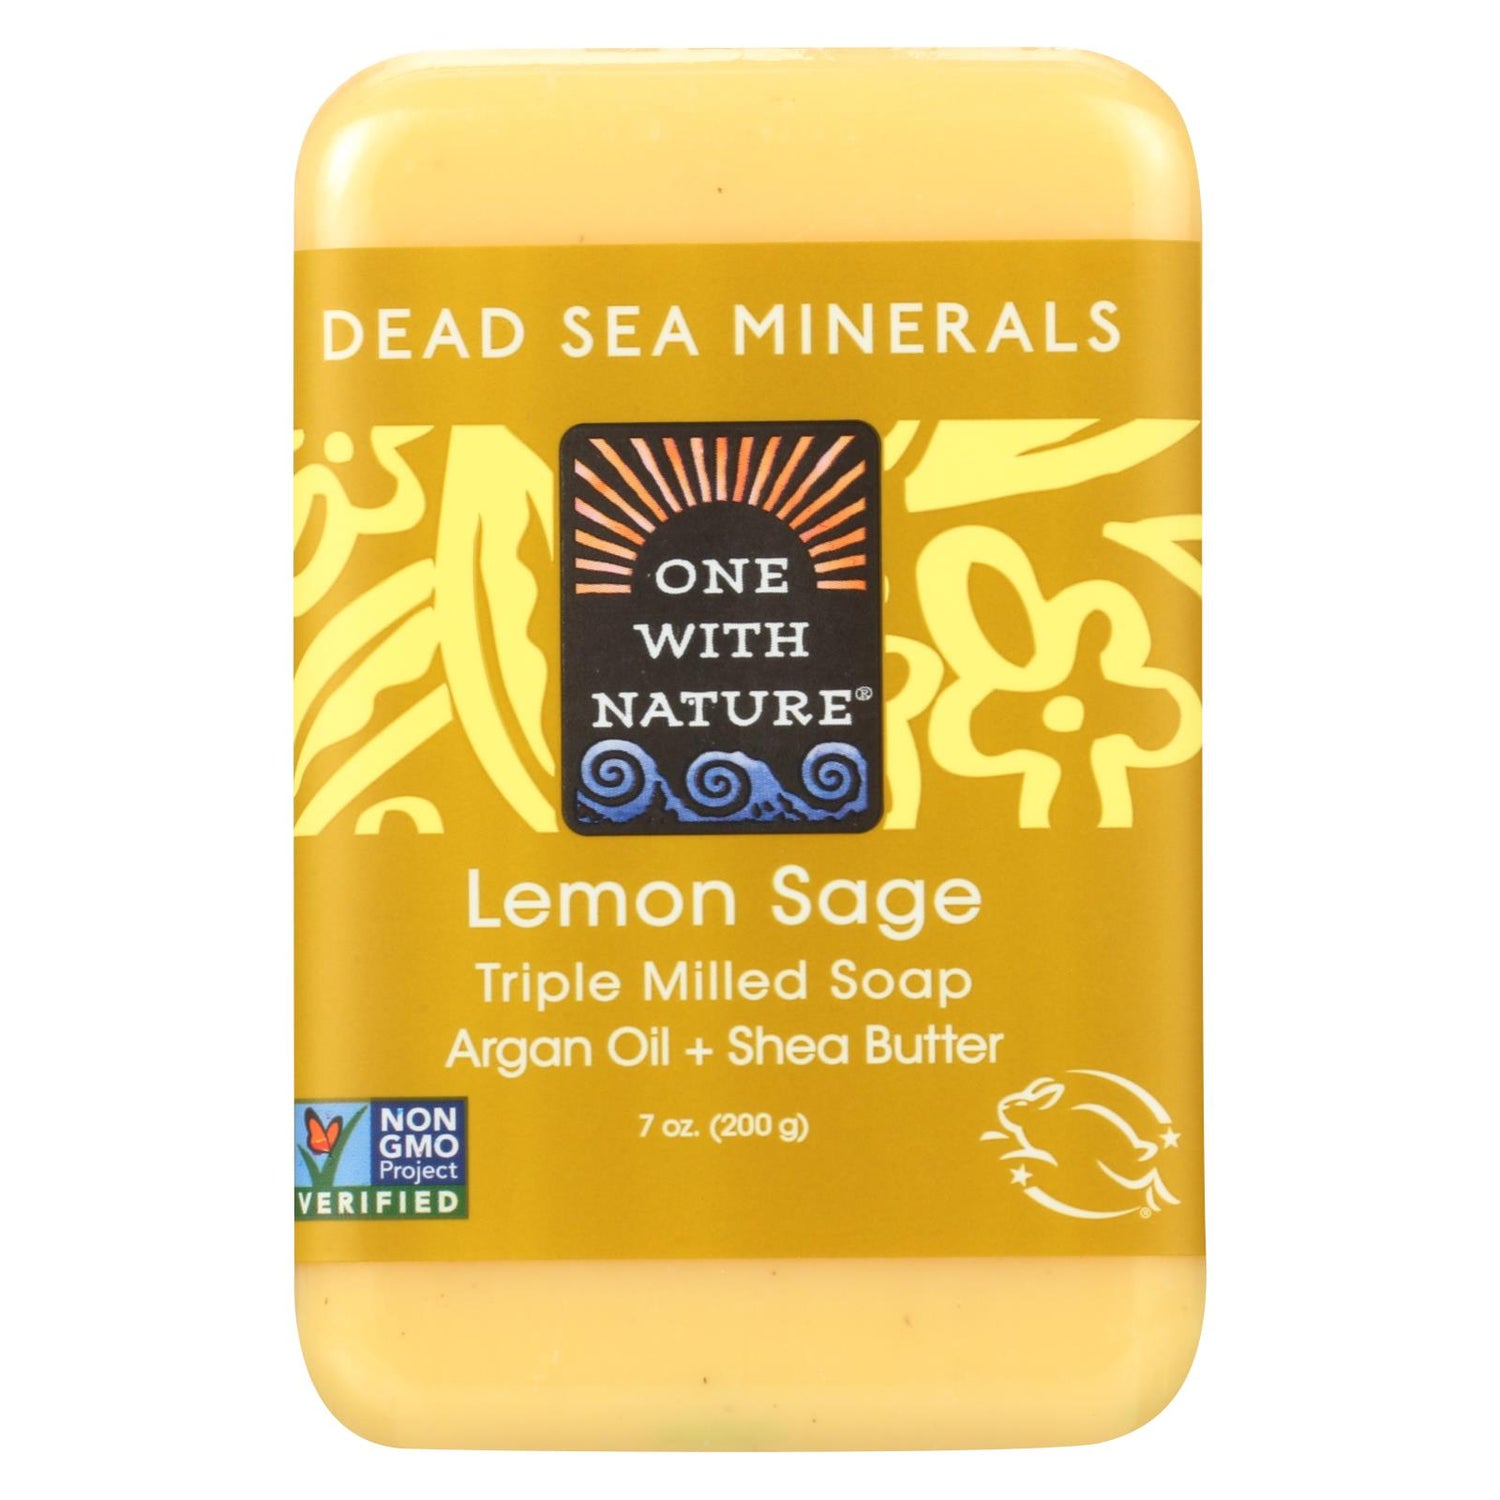 One With Nature Dead Sea Mineral Lemon Verbena Soap - 7 Oz